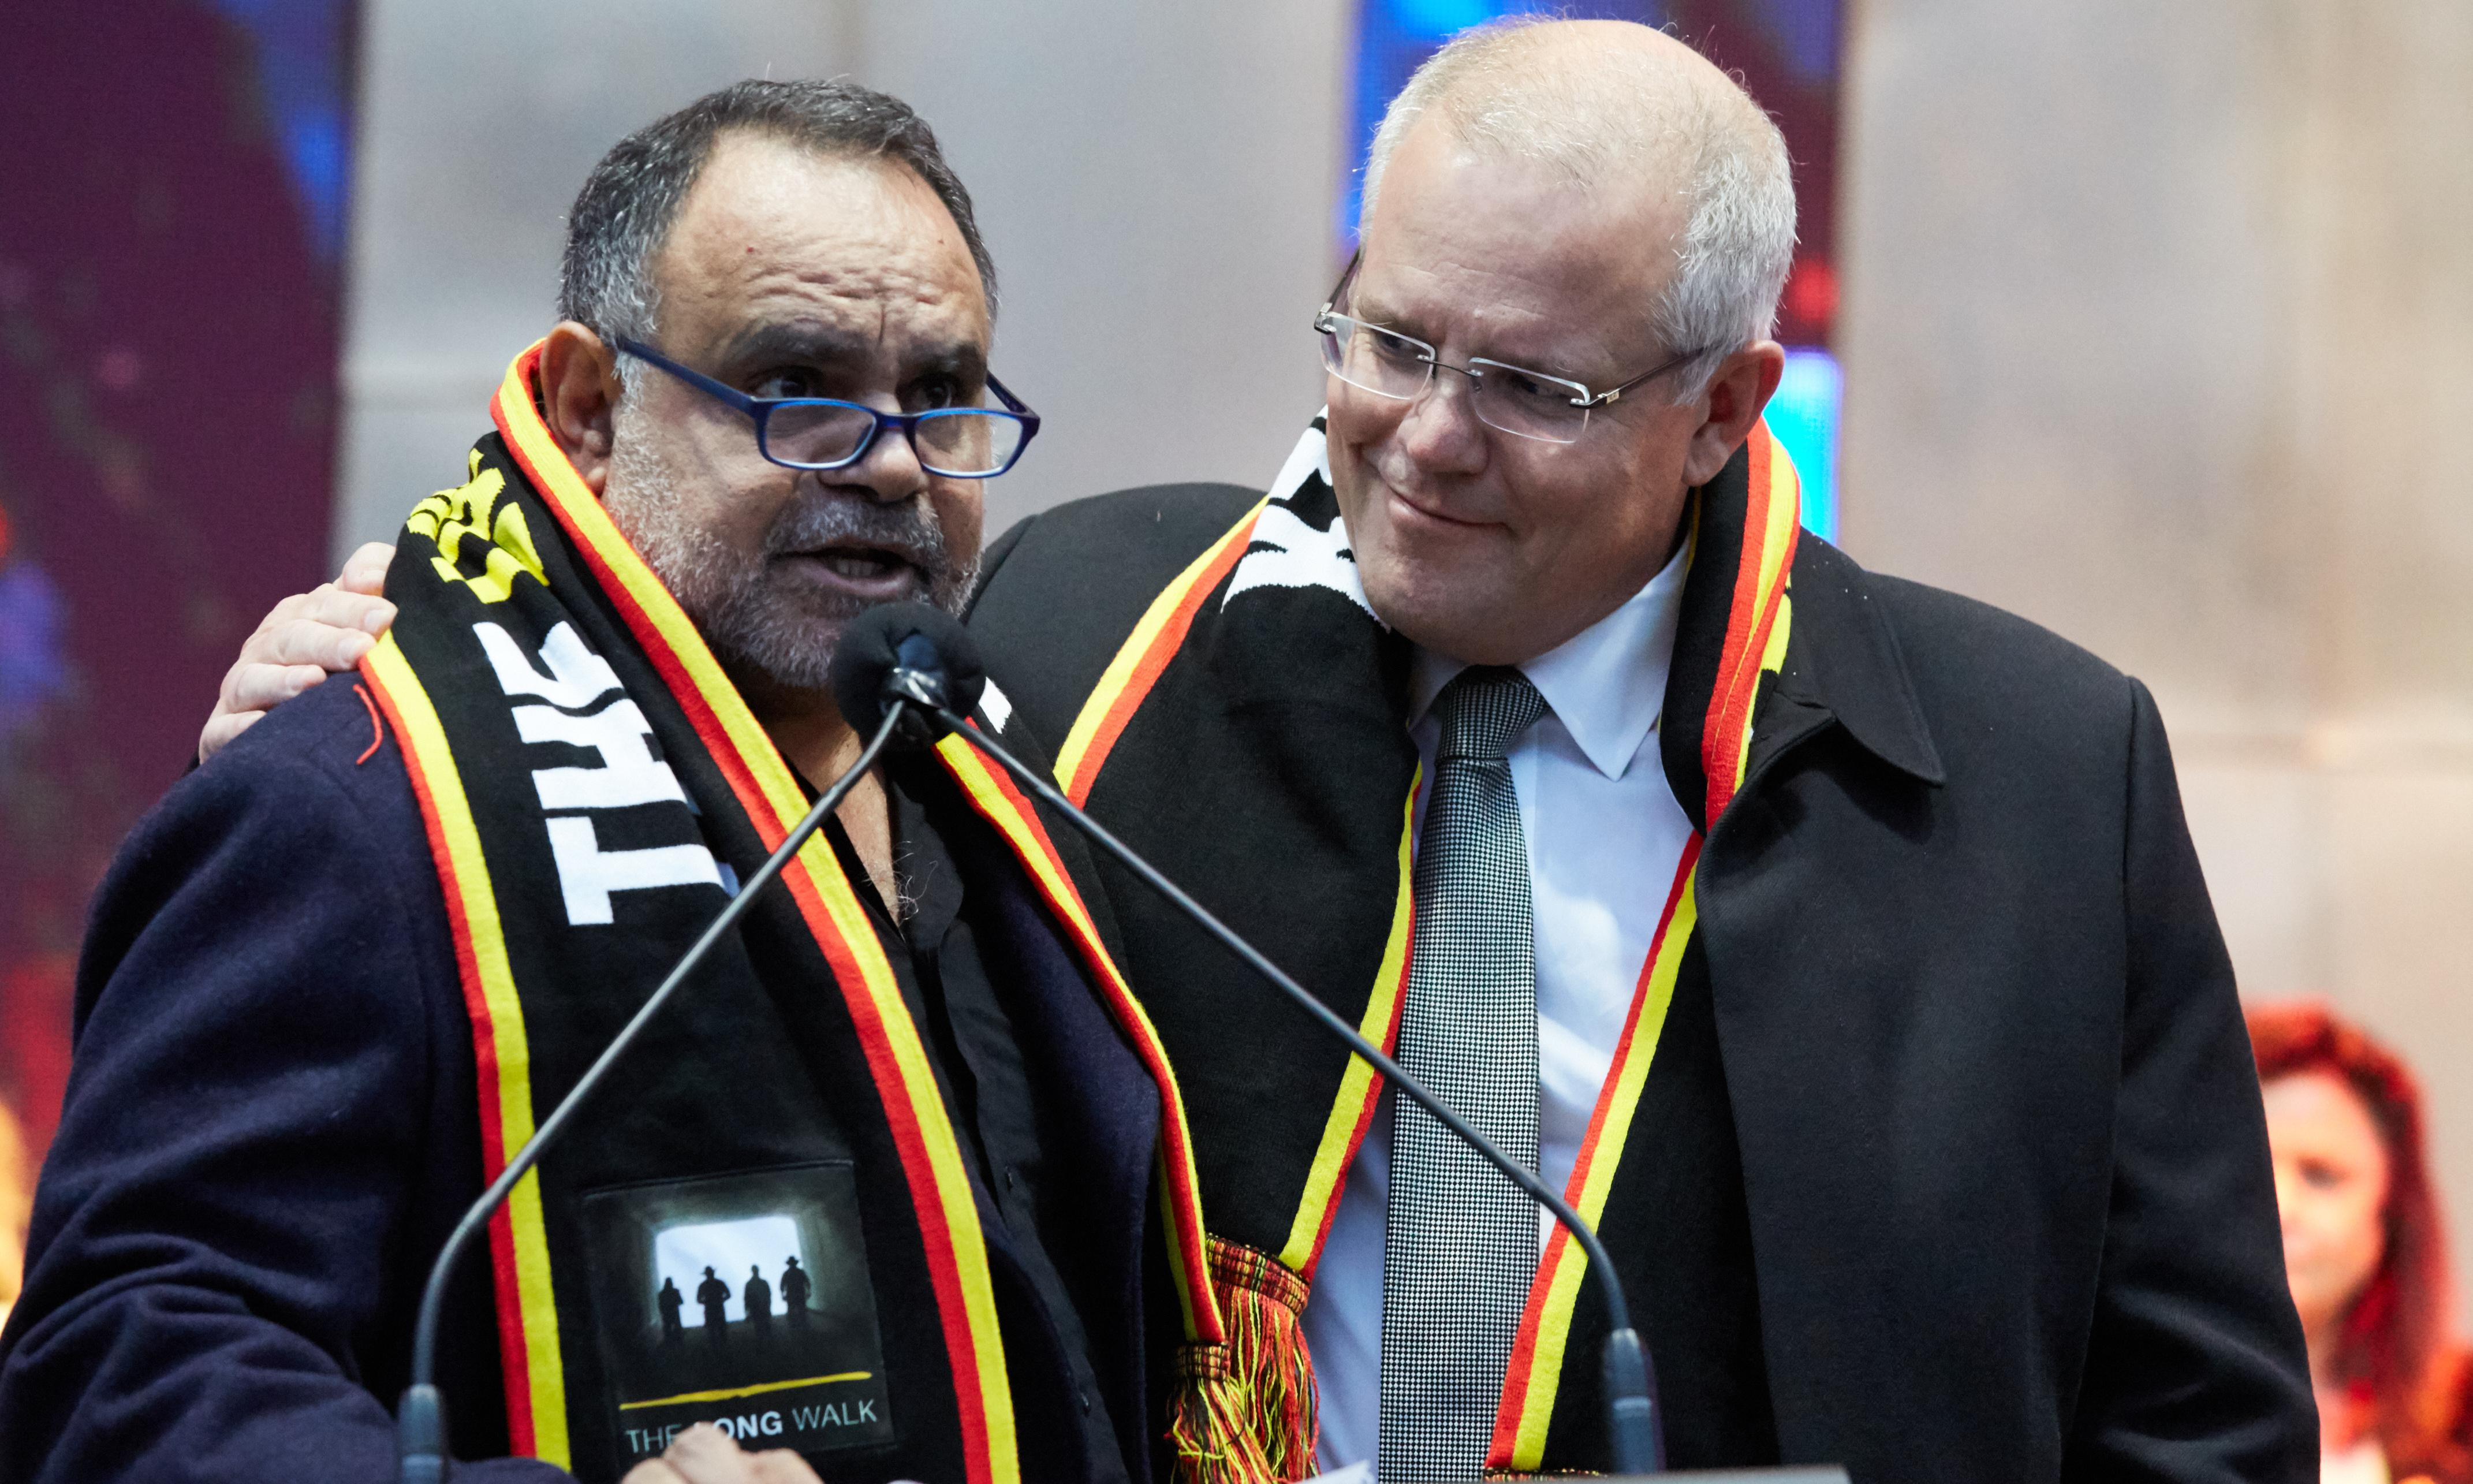 Indigenous AFL champ Michael Long urges PM to be 'a captain we can believe in'